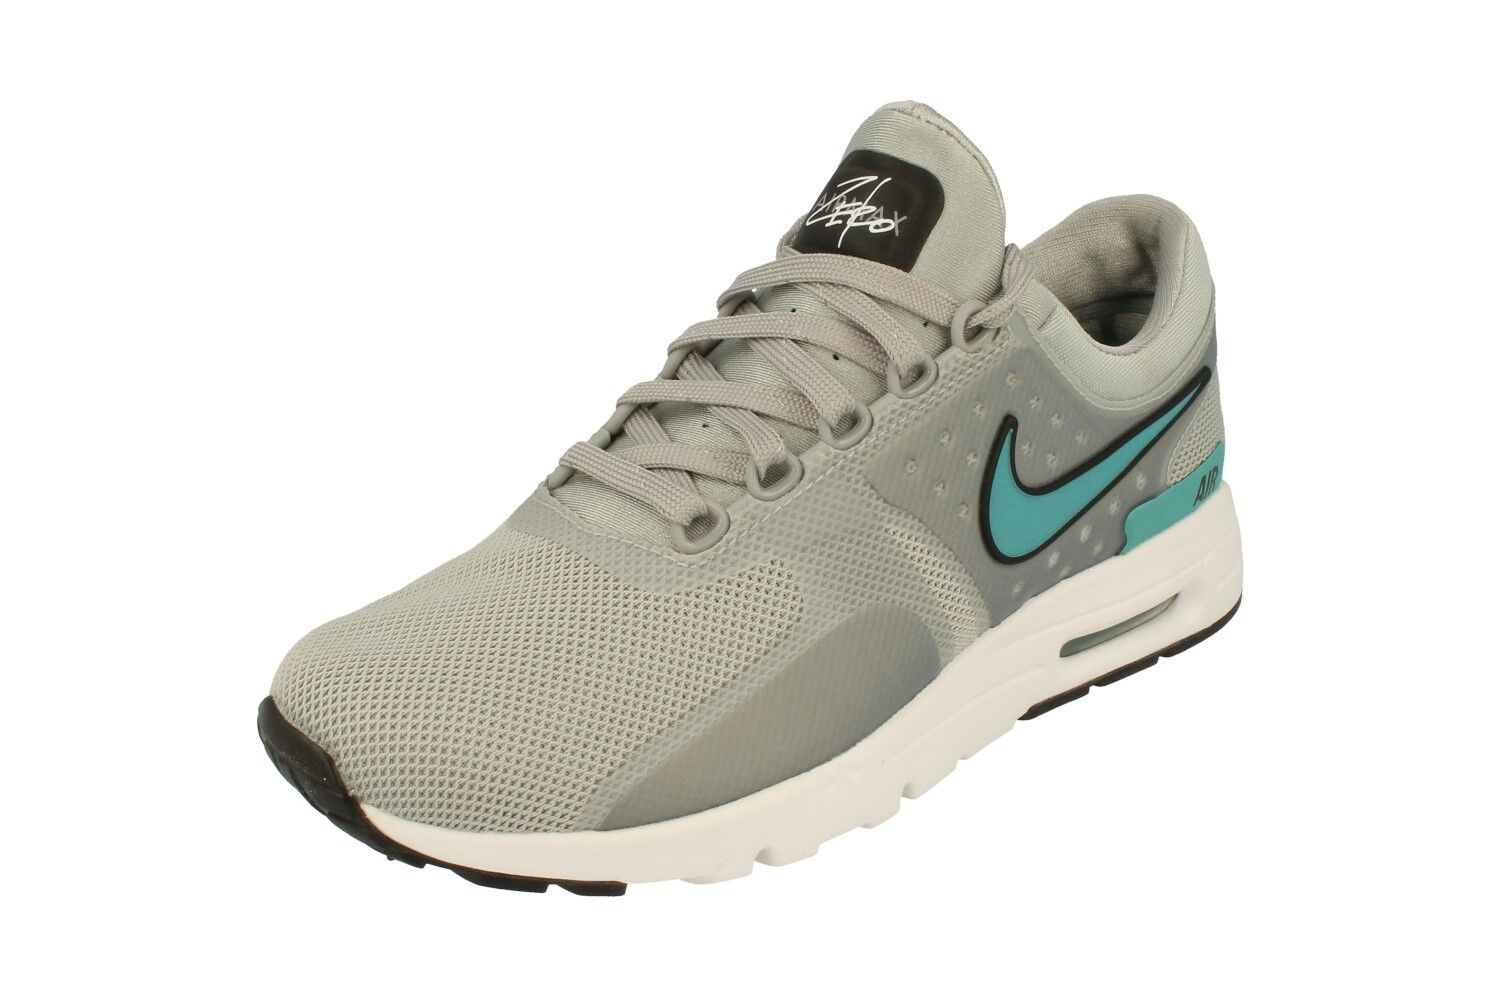 Nike Air Max Zero Qs Baskets de Course pour Femmes 863700 Baskets 001